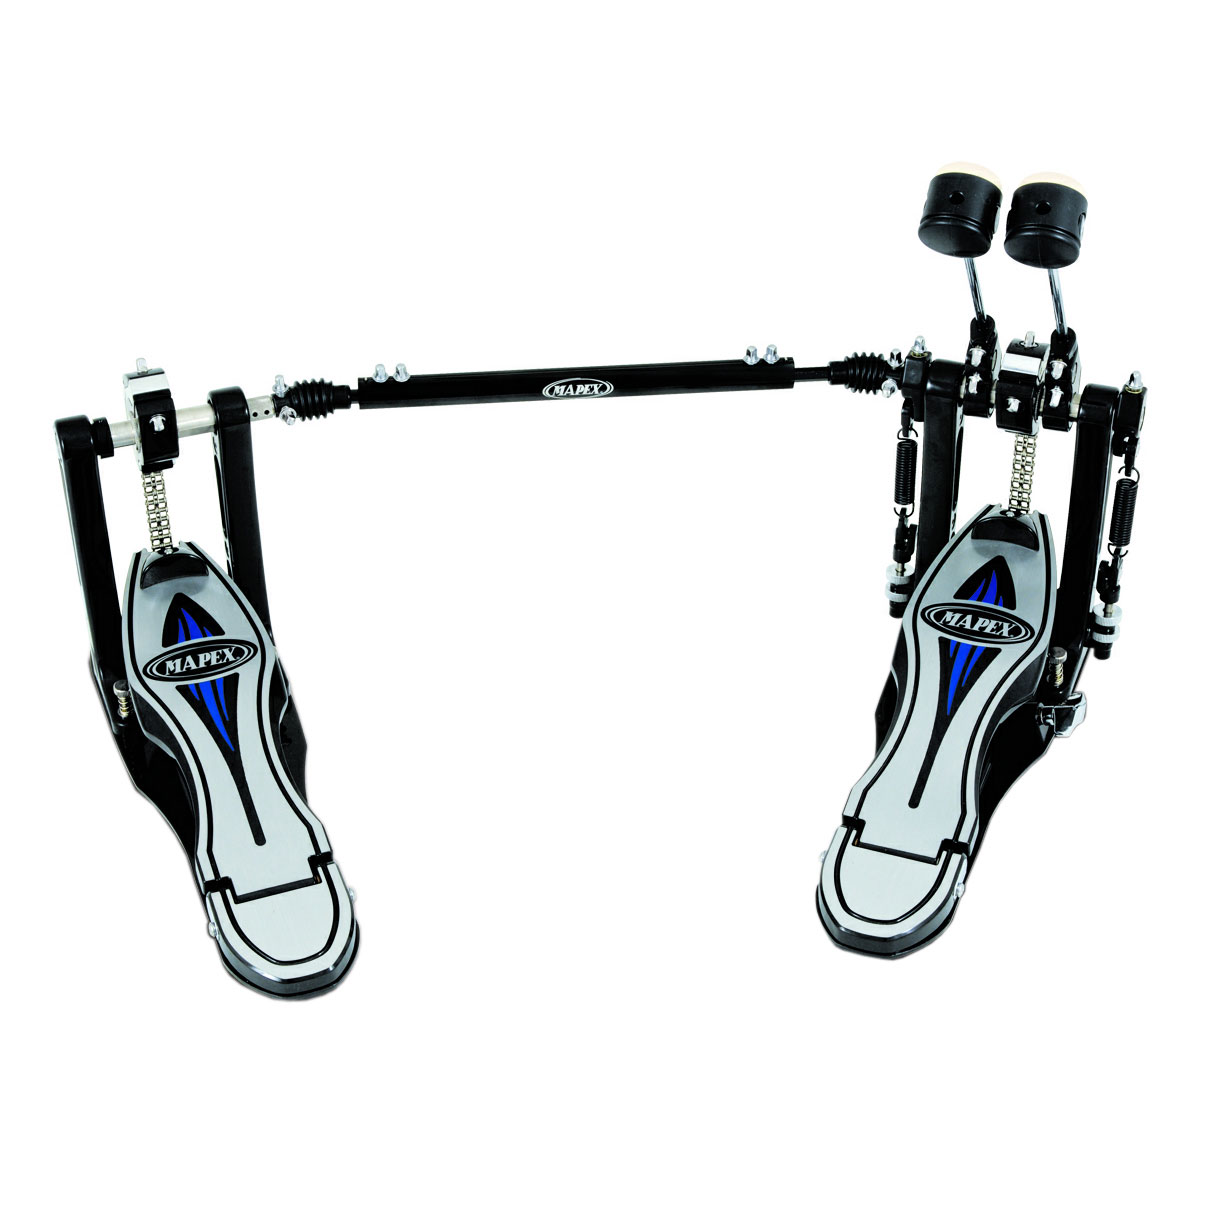 Mapex Falcon Double Bass Pedal